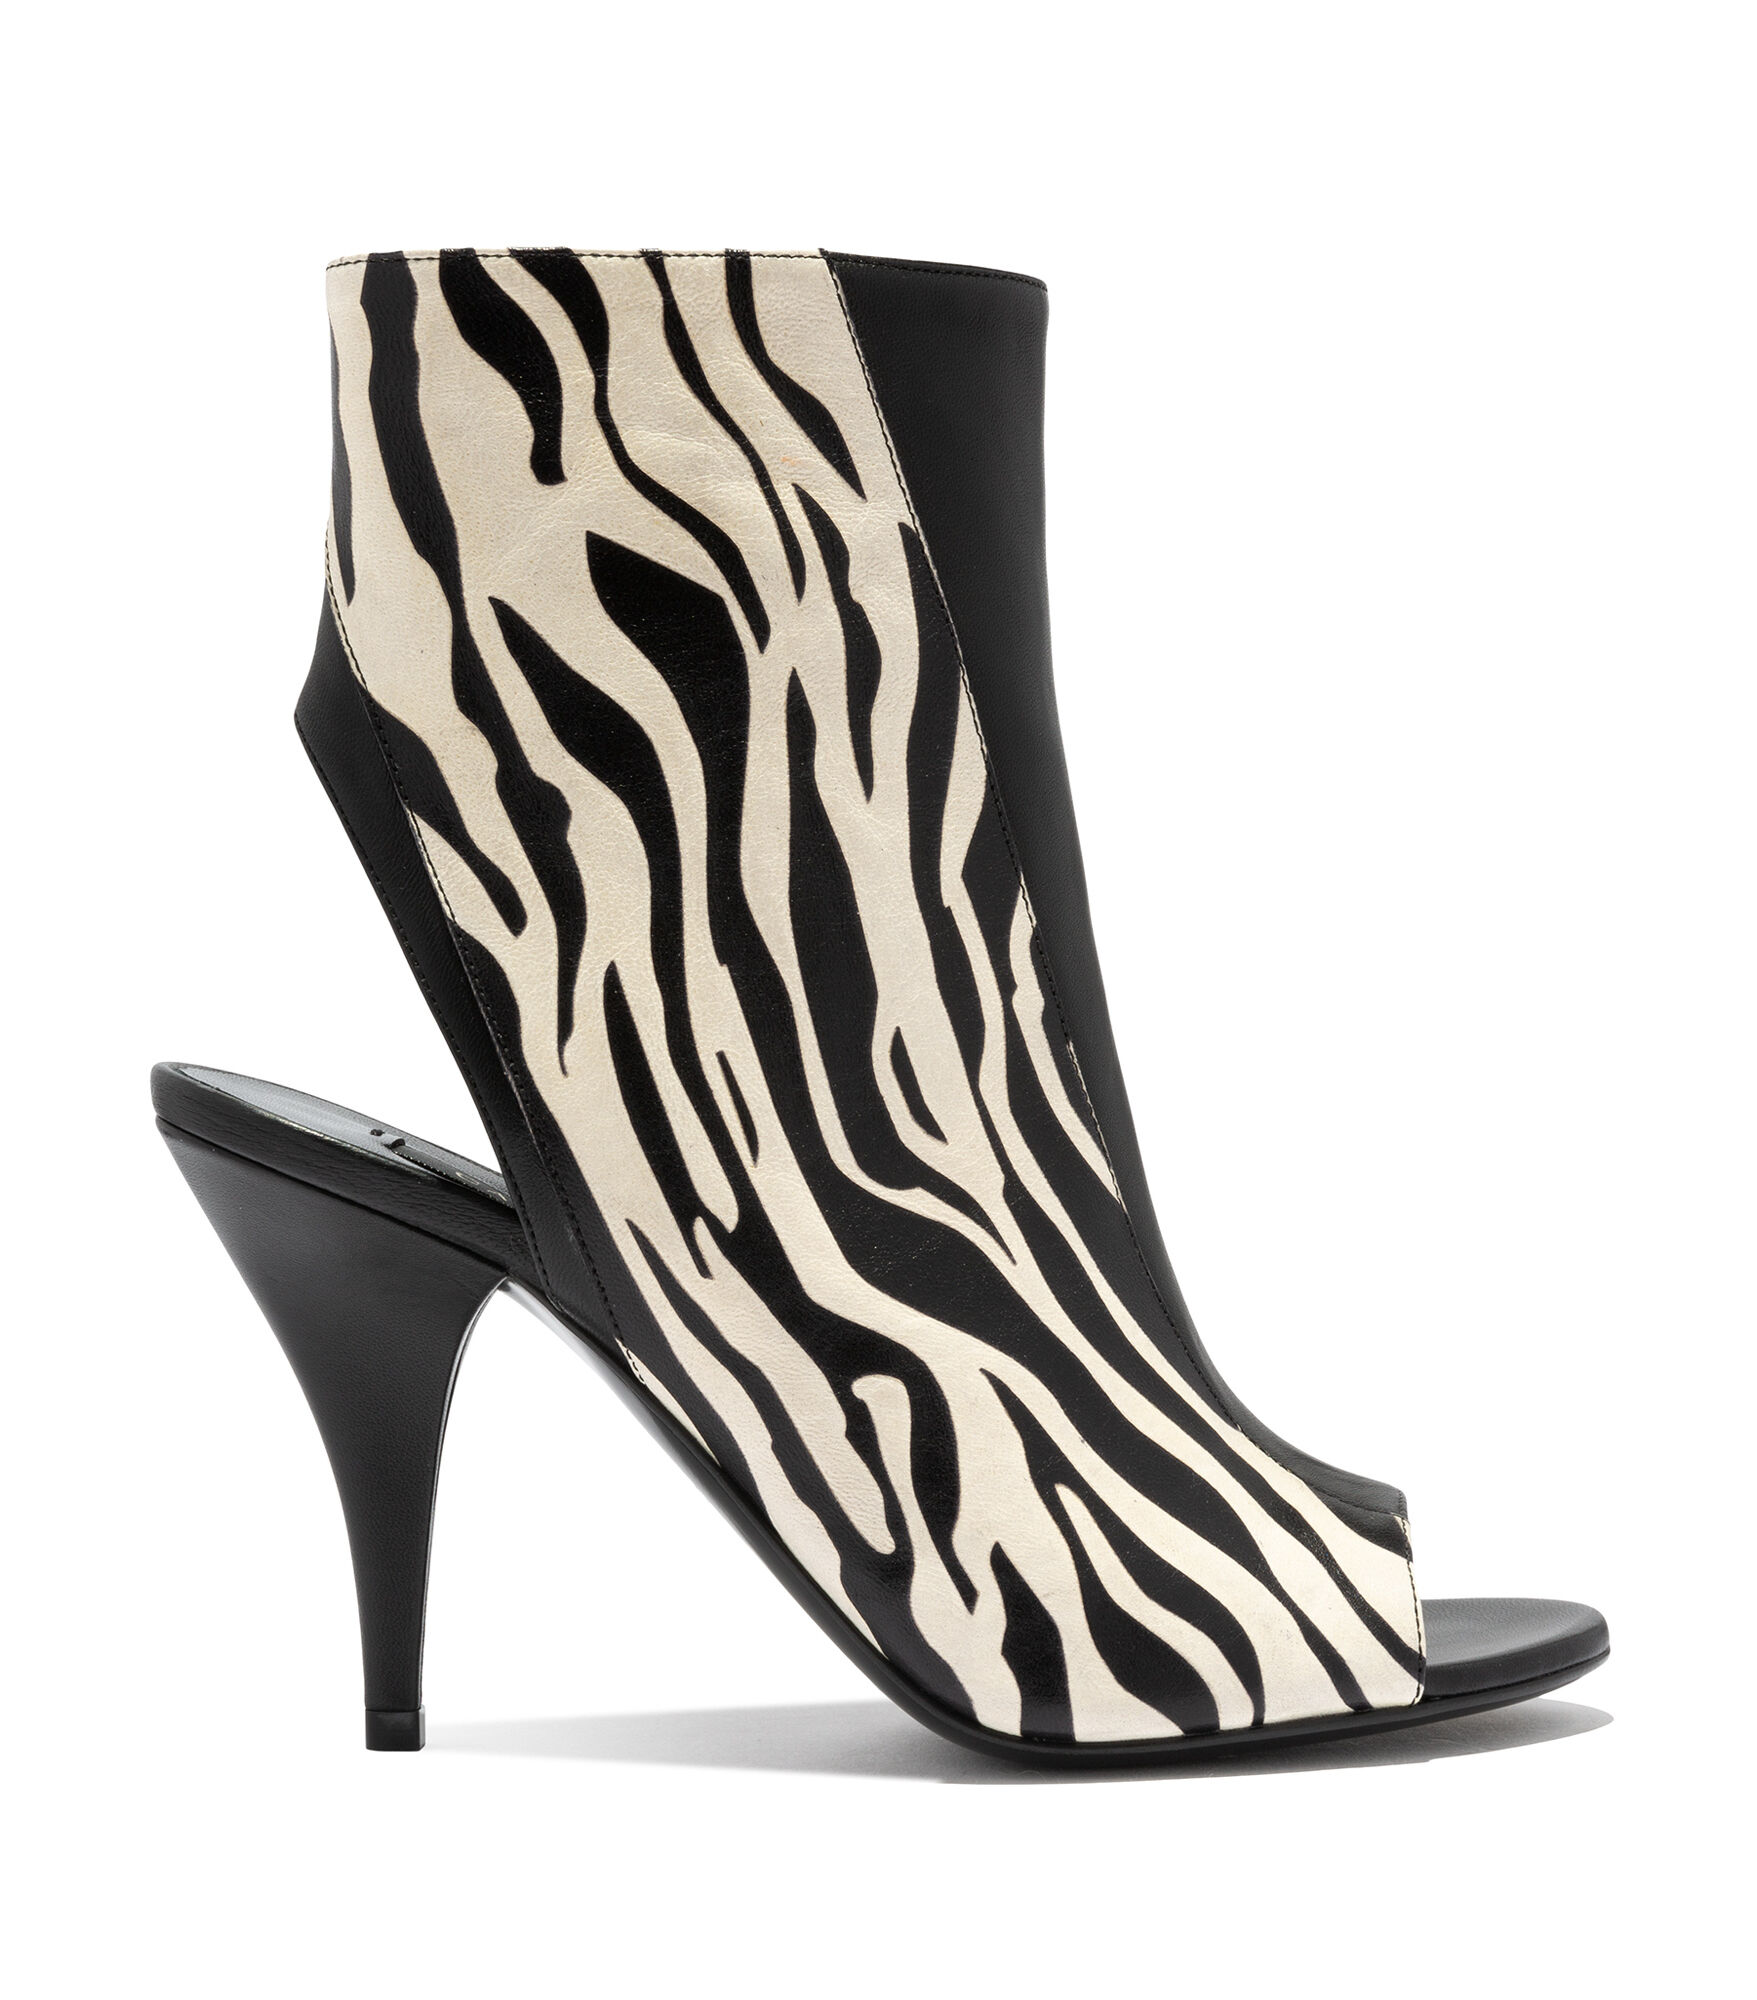 Casadei Ankle Boots - Delfina Black and White Zebra Effect Printed Leather